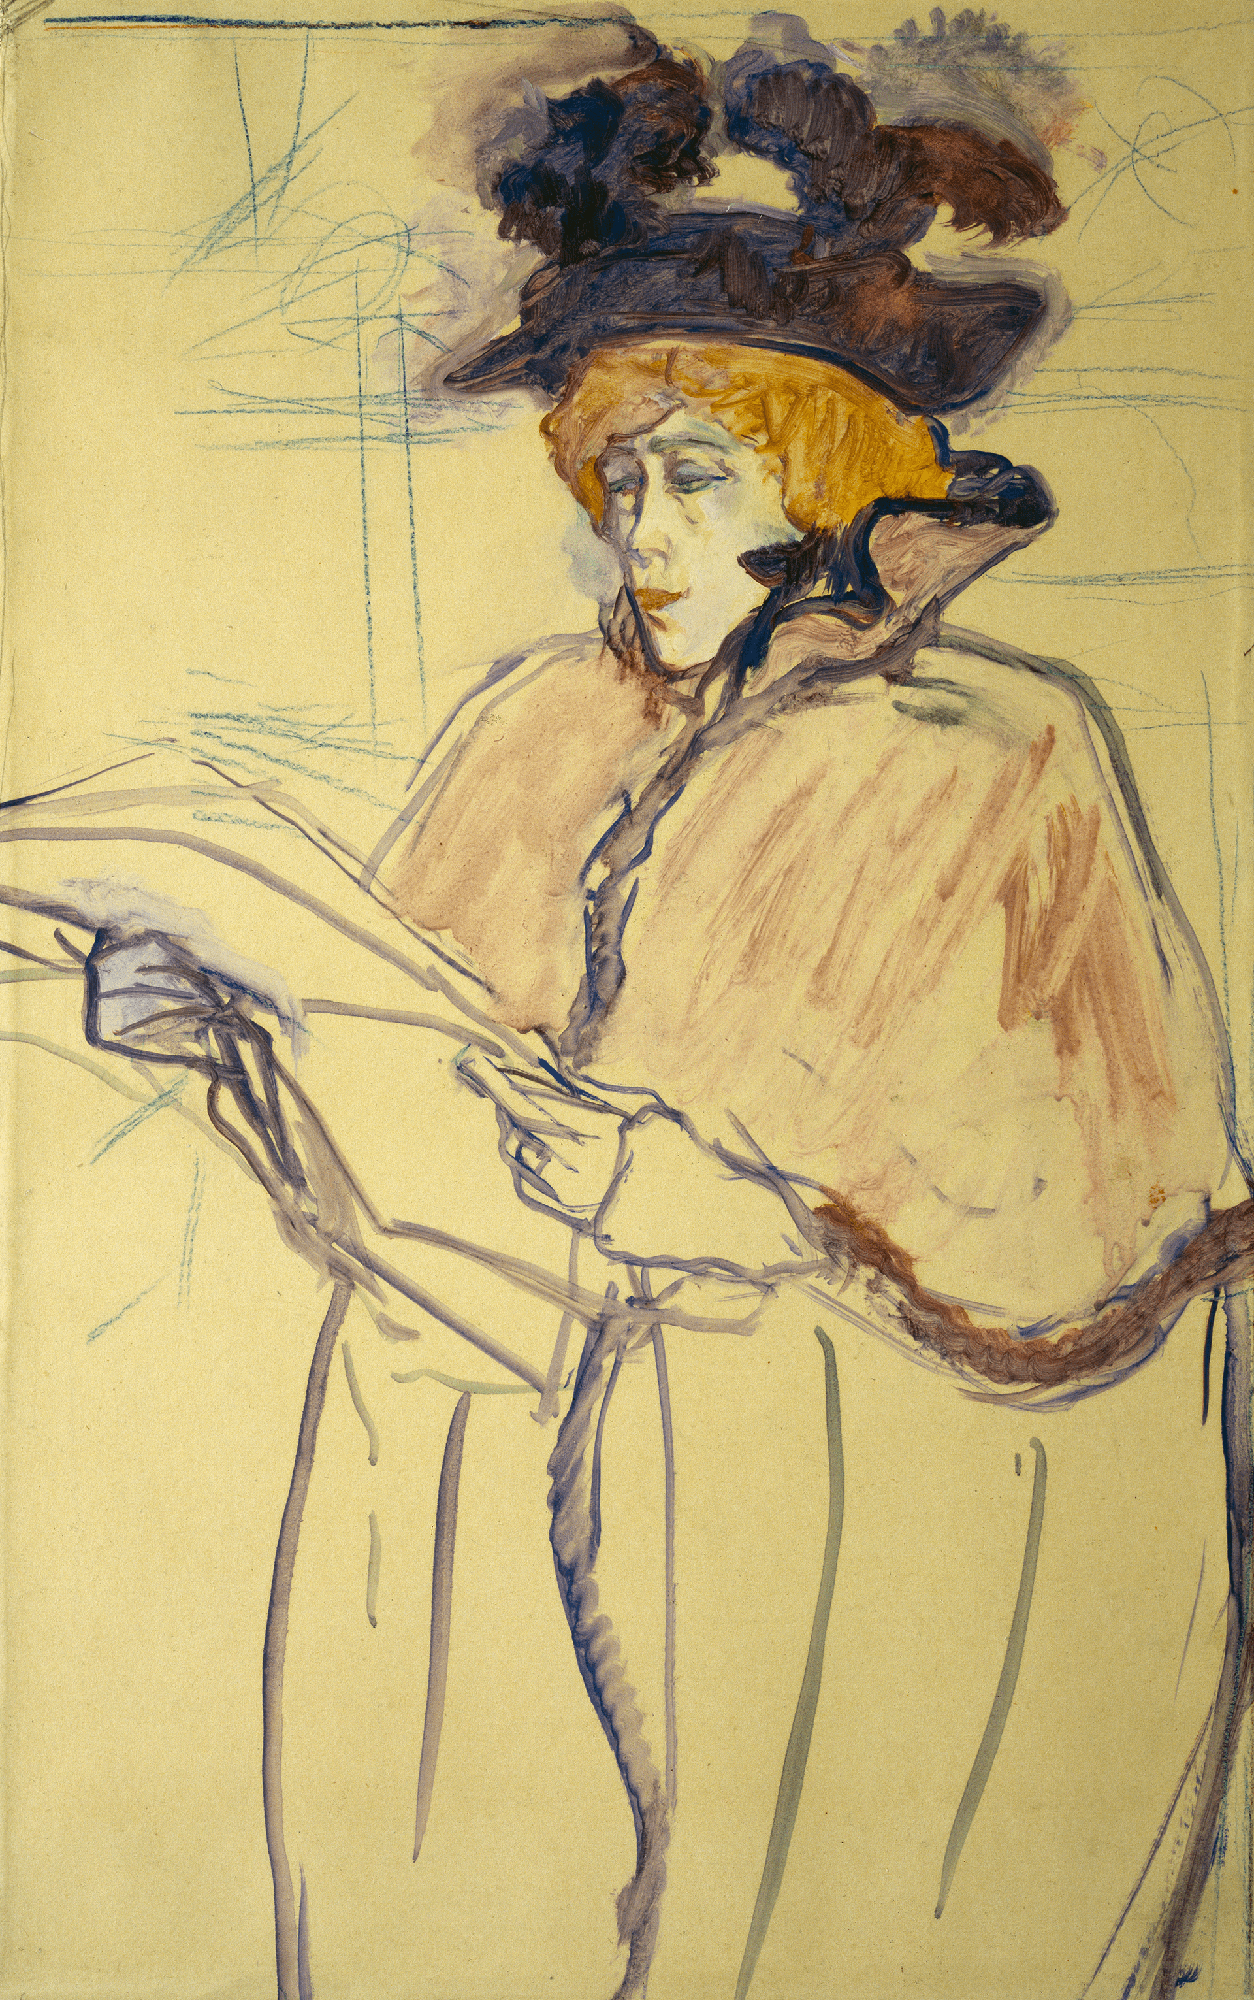 A redheaded woman seen in left profile looks intently at the large white sheets of paper she holds in her hands. Her hat, face, and cloak are filled in with pigment.